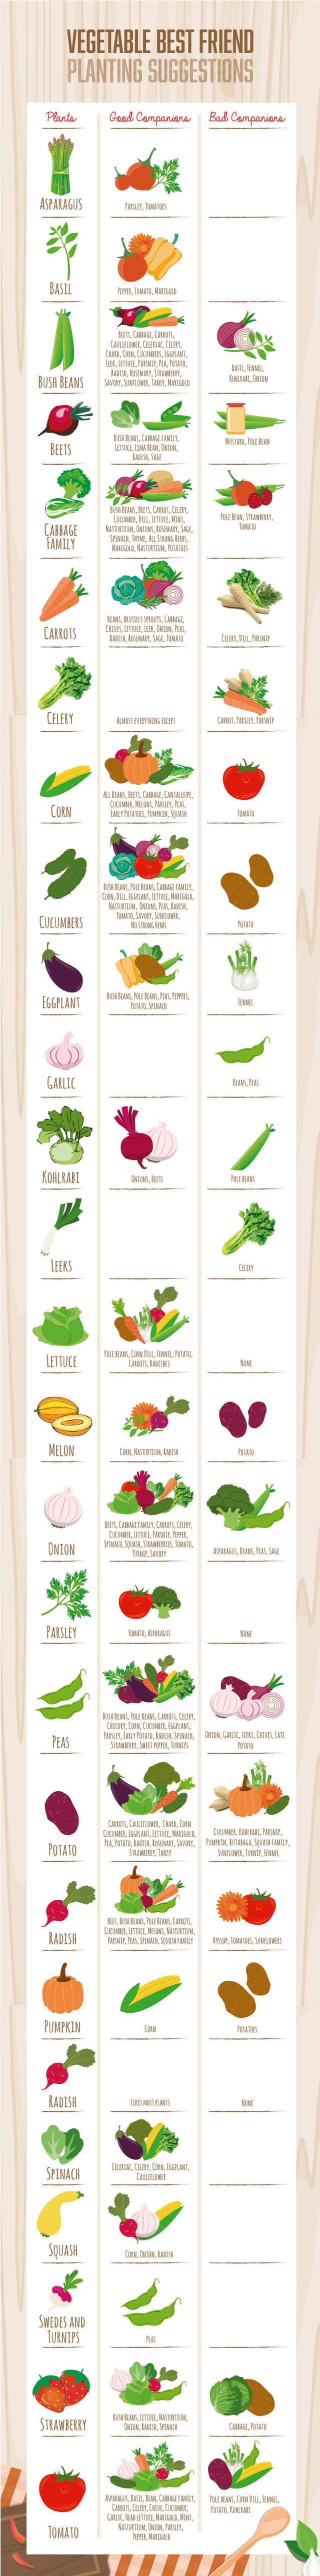 Gardening expert Vicki Joseph's companion planting chart should be a must-have for any gardener who's not sure what veggies should be planted together.